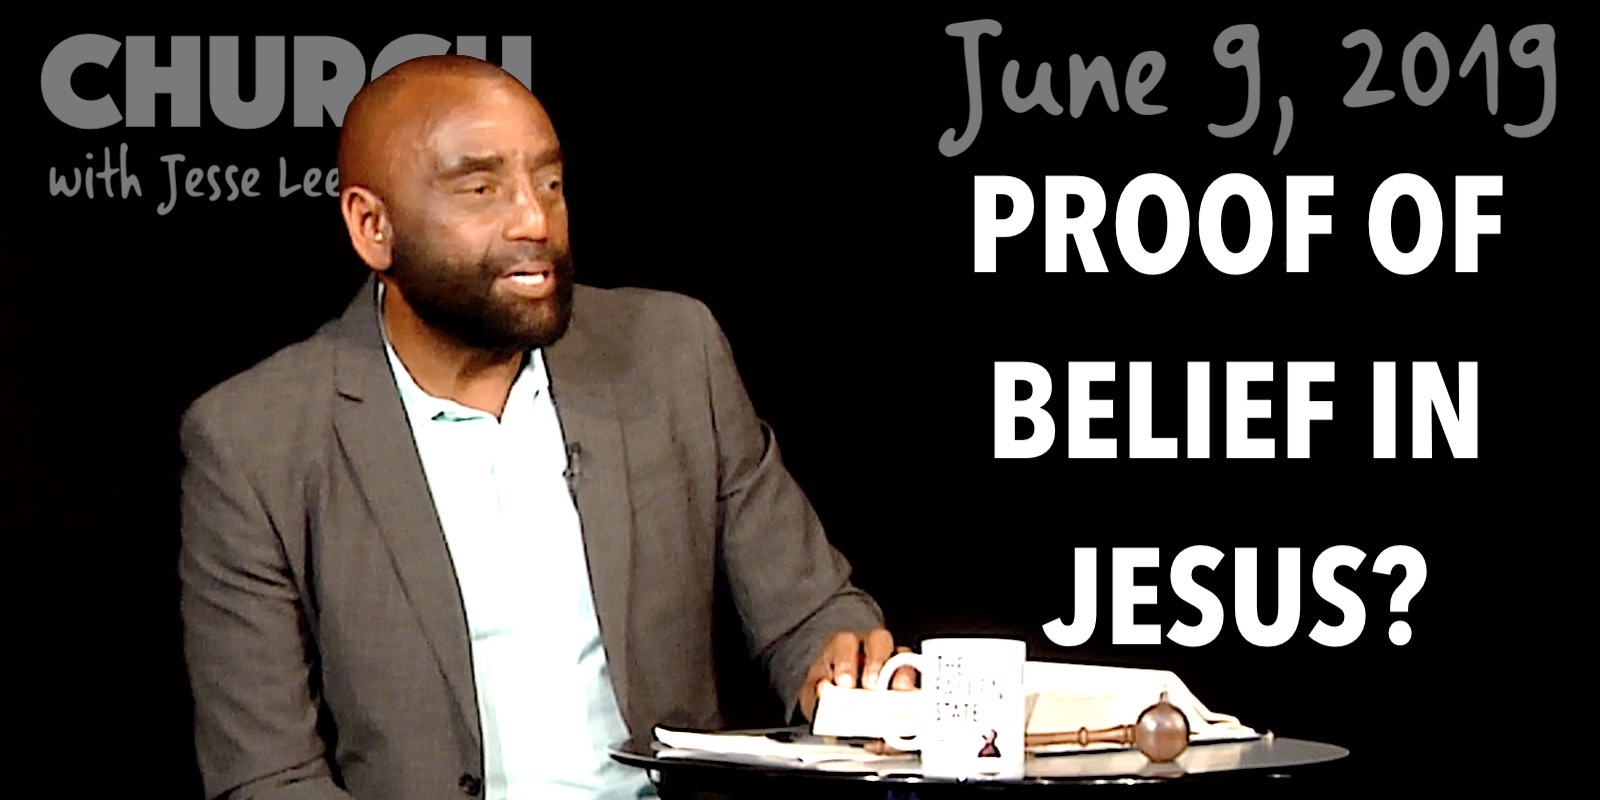 Proof of Belief in Jesus? (Church, Jun 9, 2019)